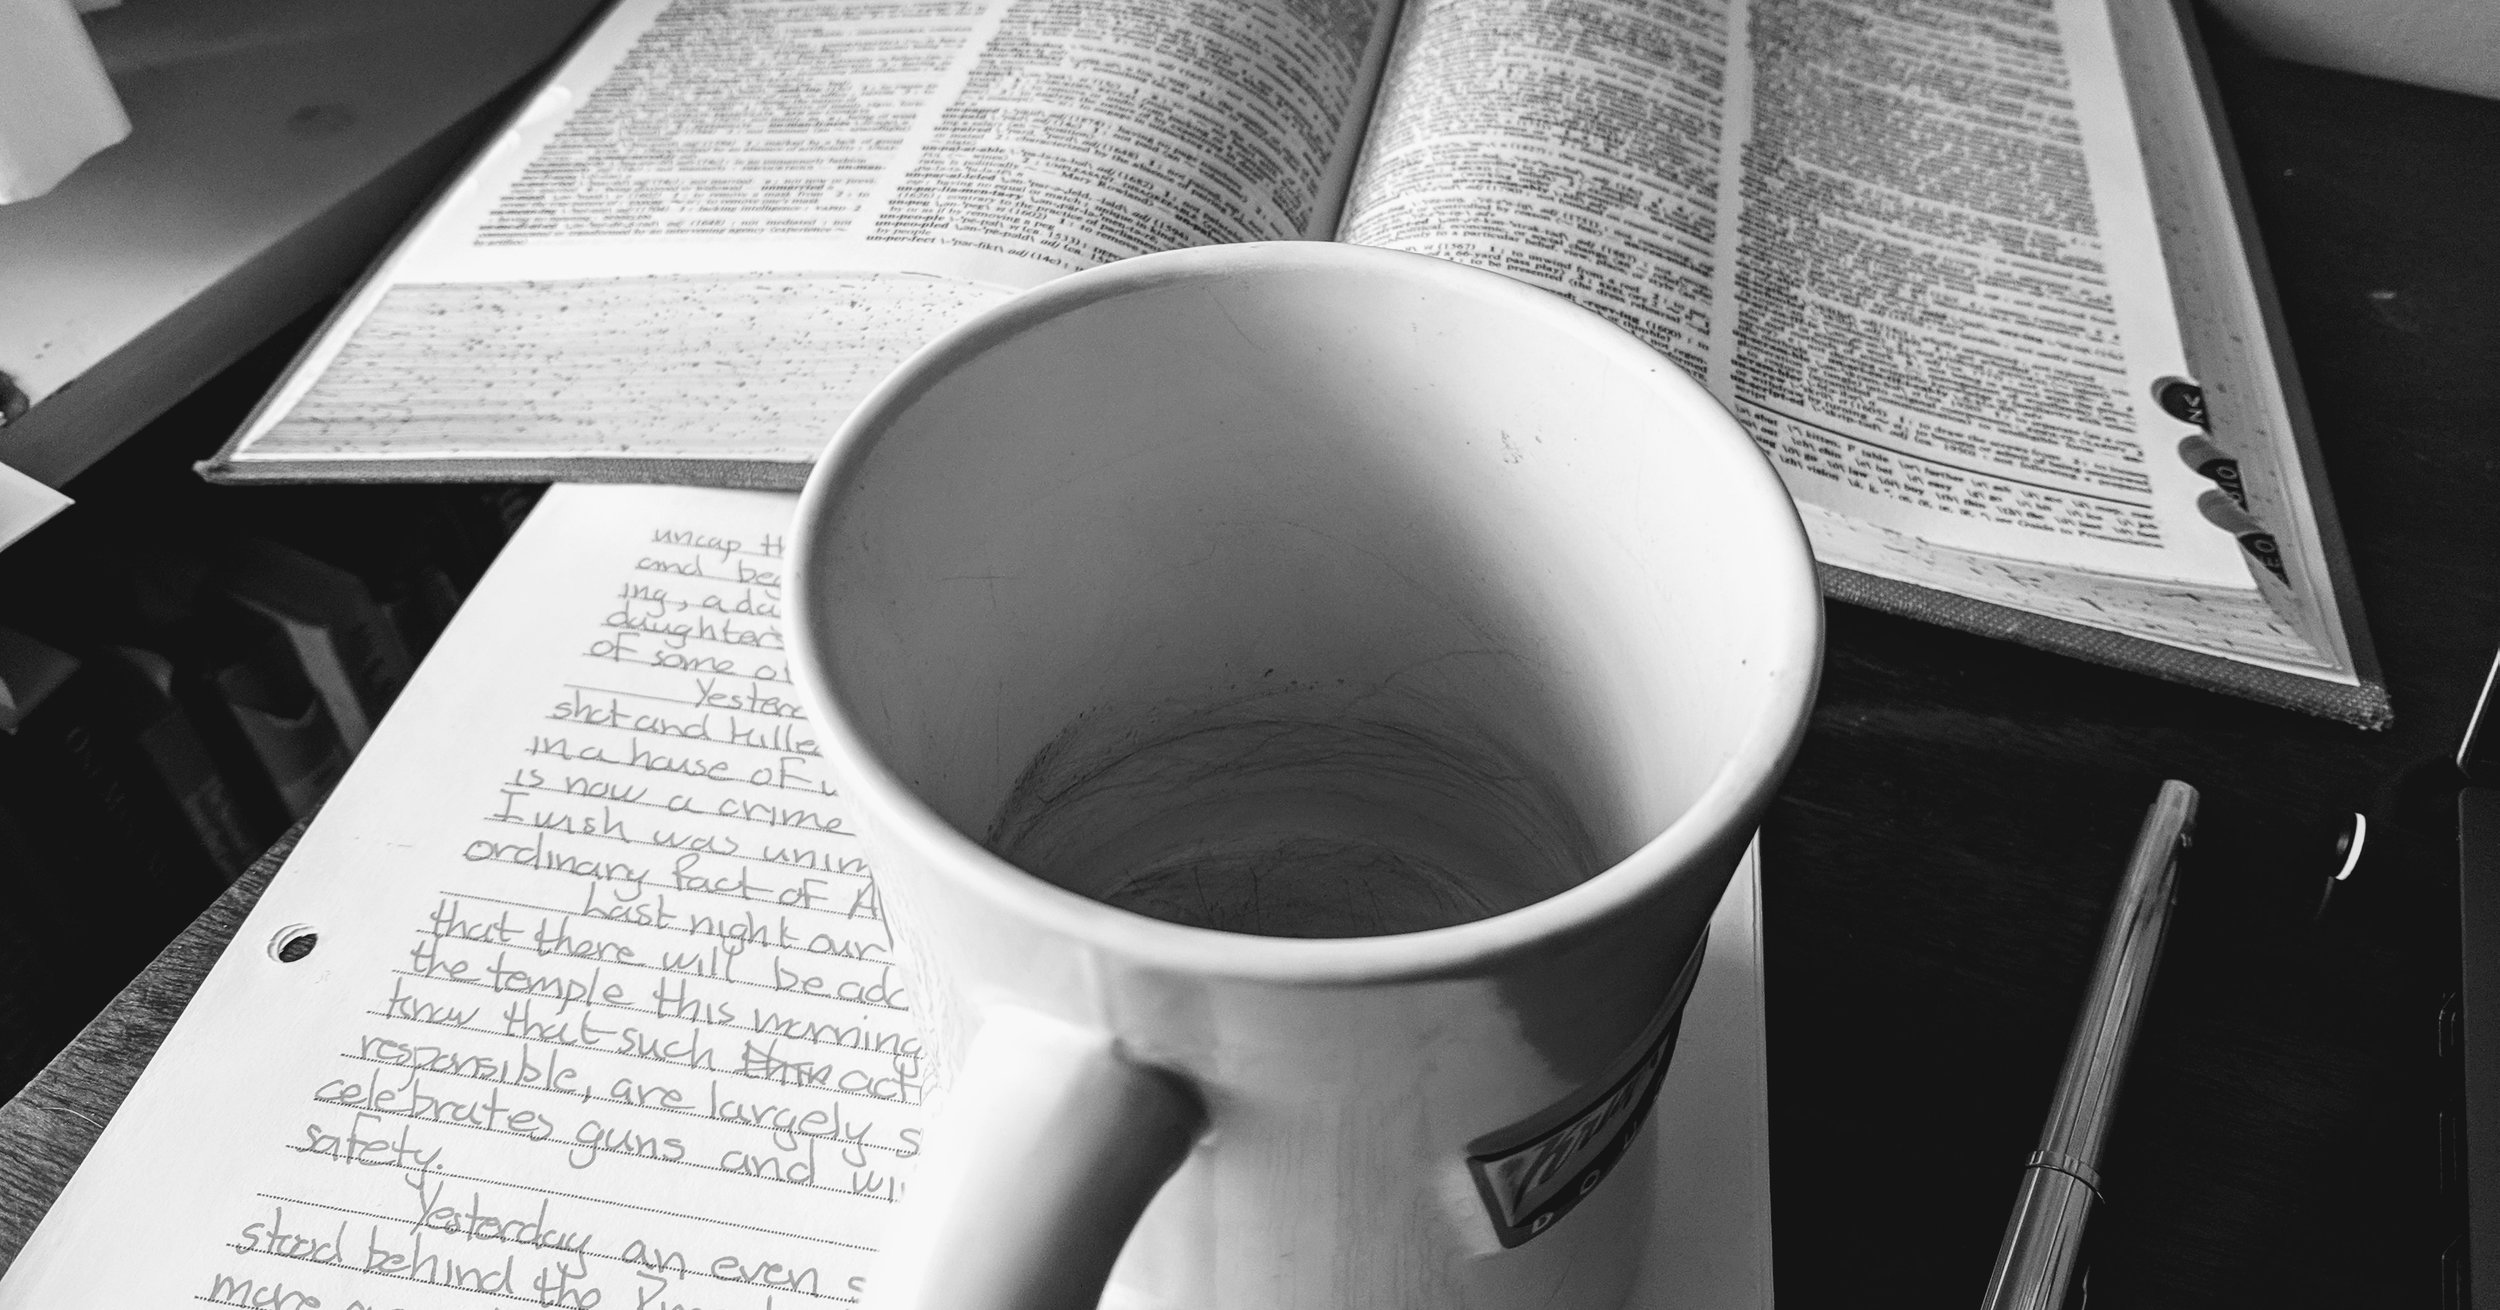 Empty mug and searching for words